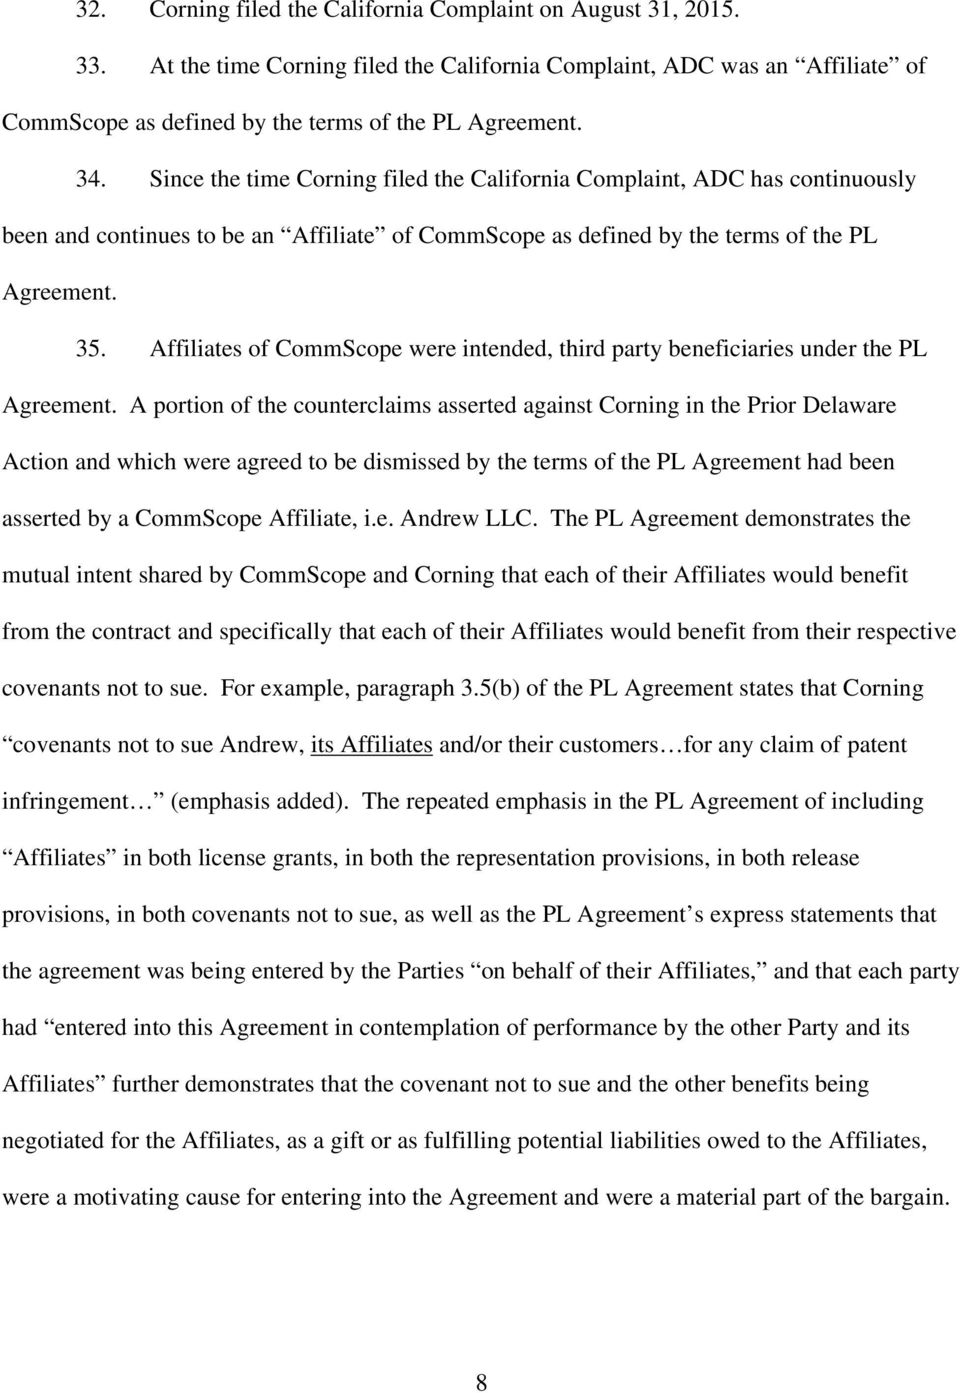 Affiliates of CommScope were intended, third party beneficiaries under the PL Agreement.